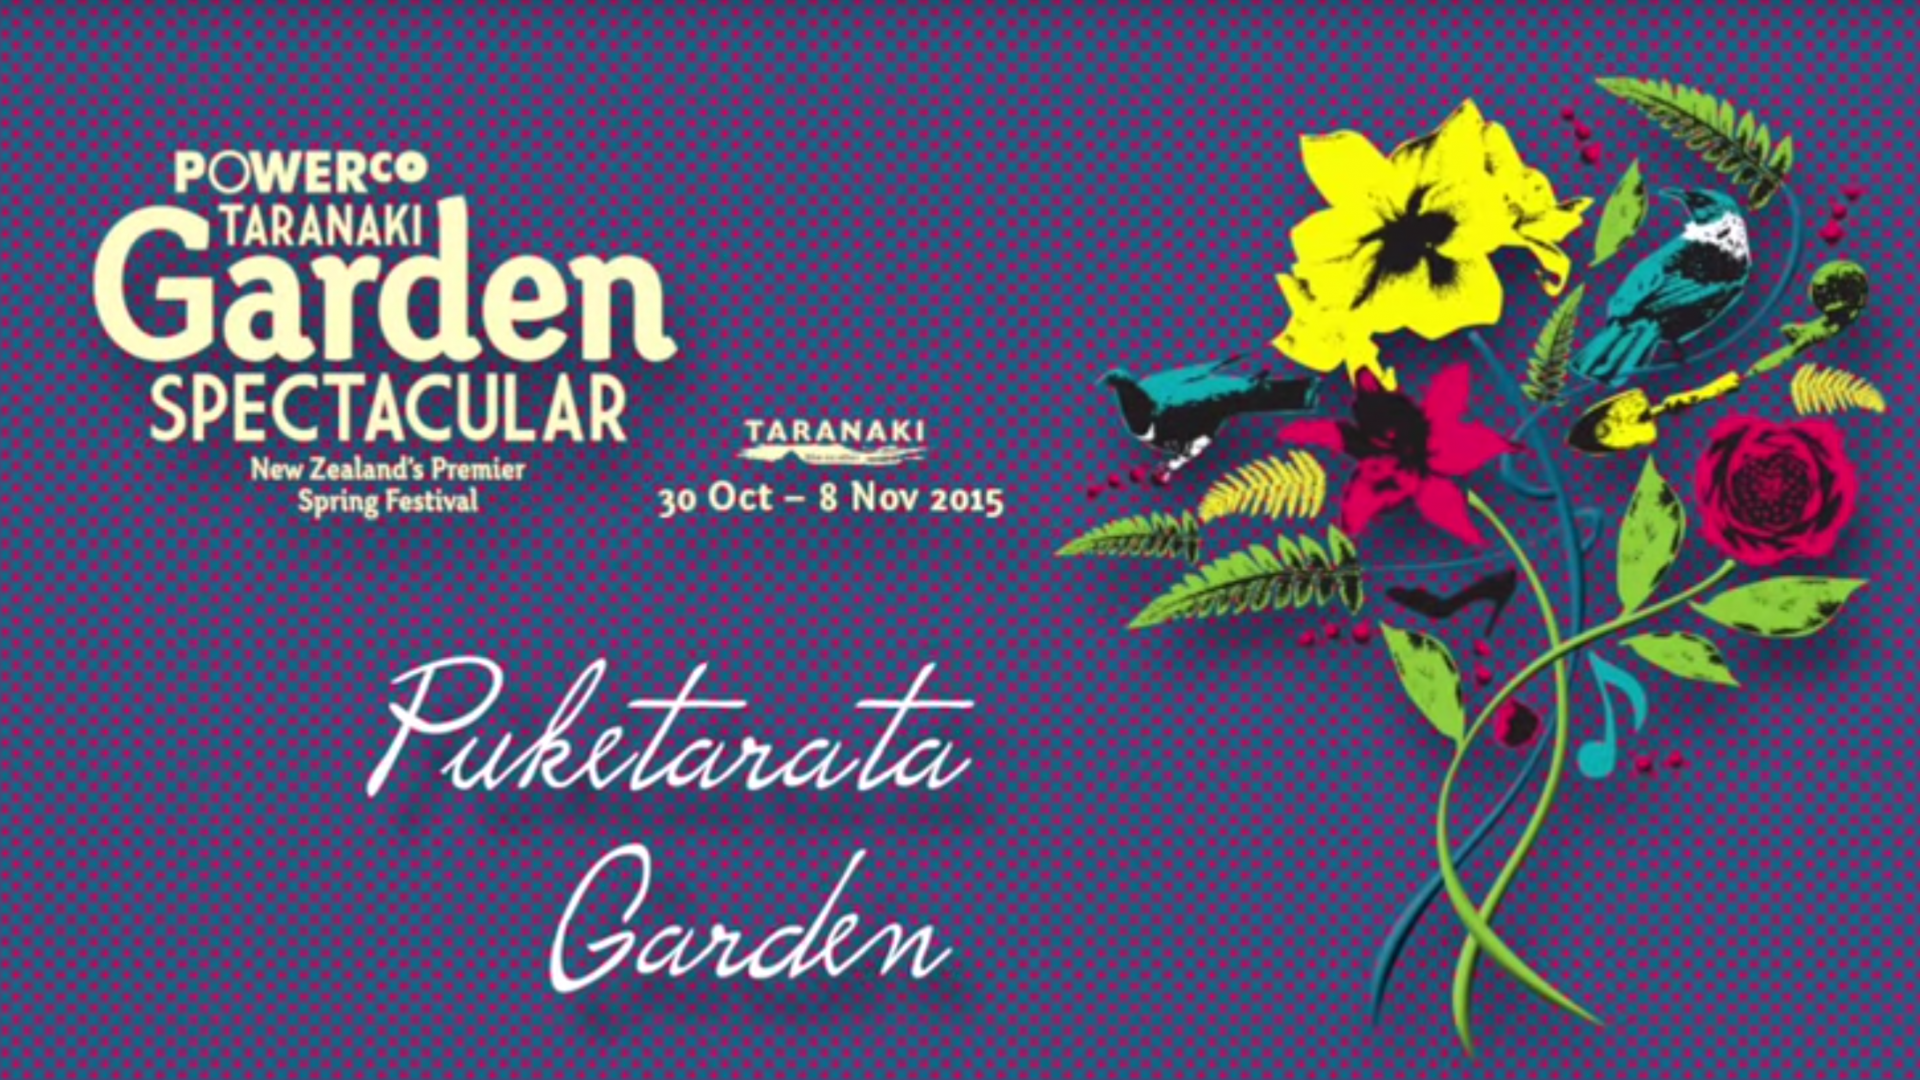 See the youtube clip taken during 2015 Garden Festival